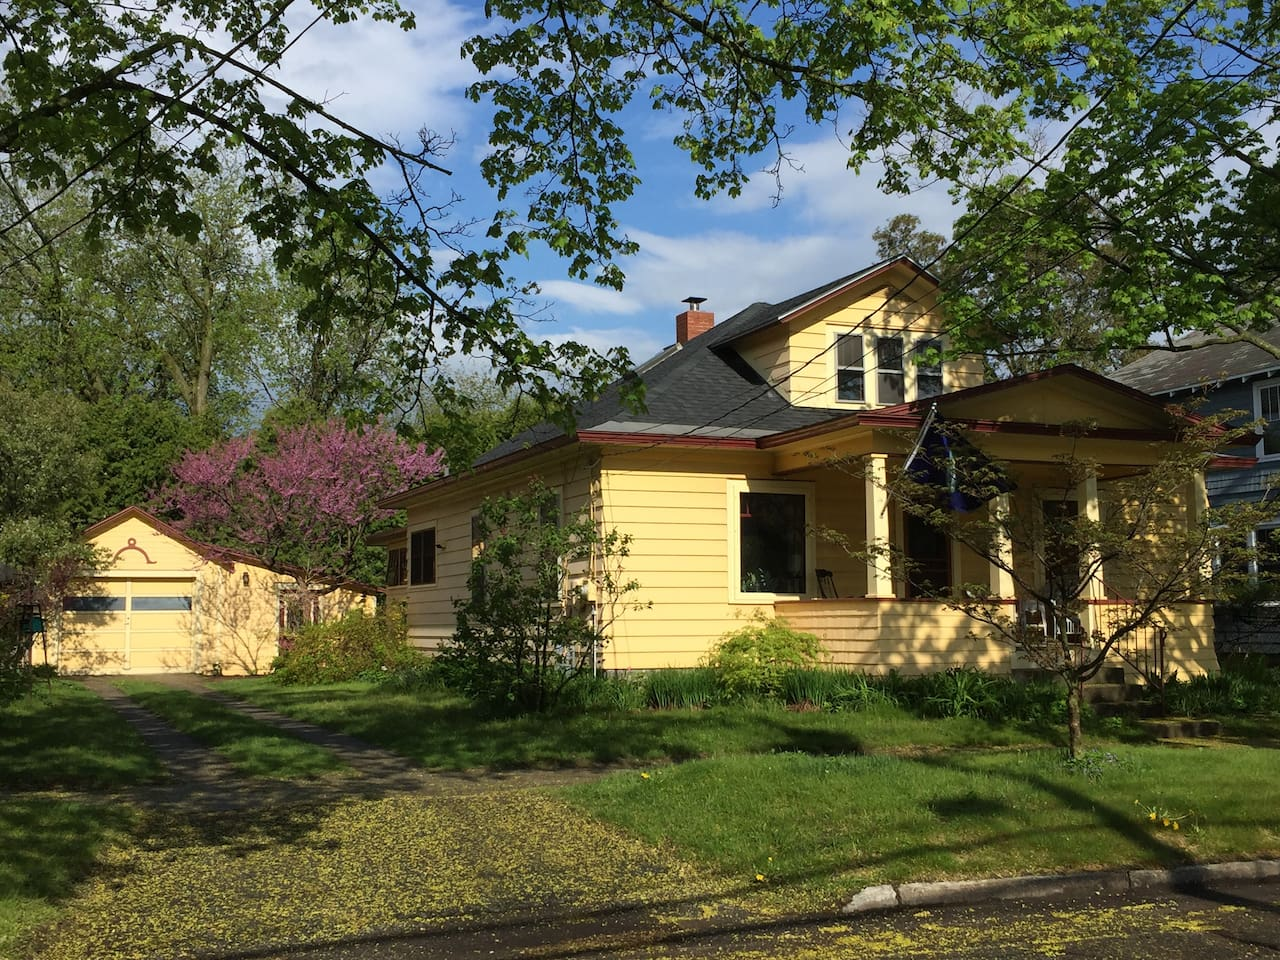 Our home, a 1 1/2-storey Craftsman bungalow built in 1930.